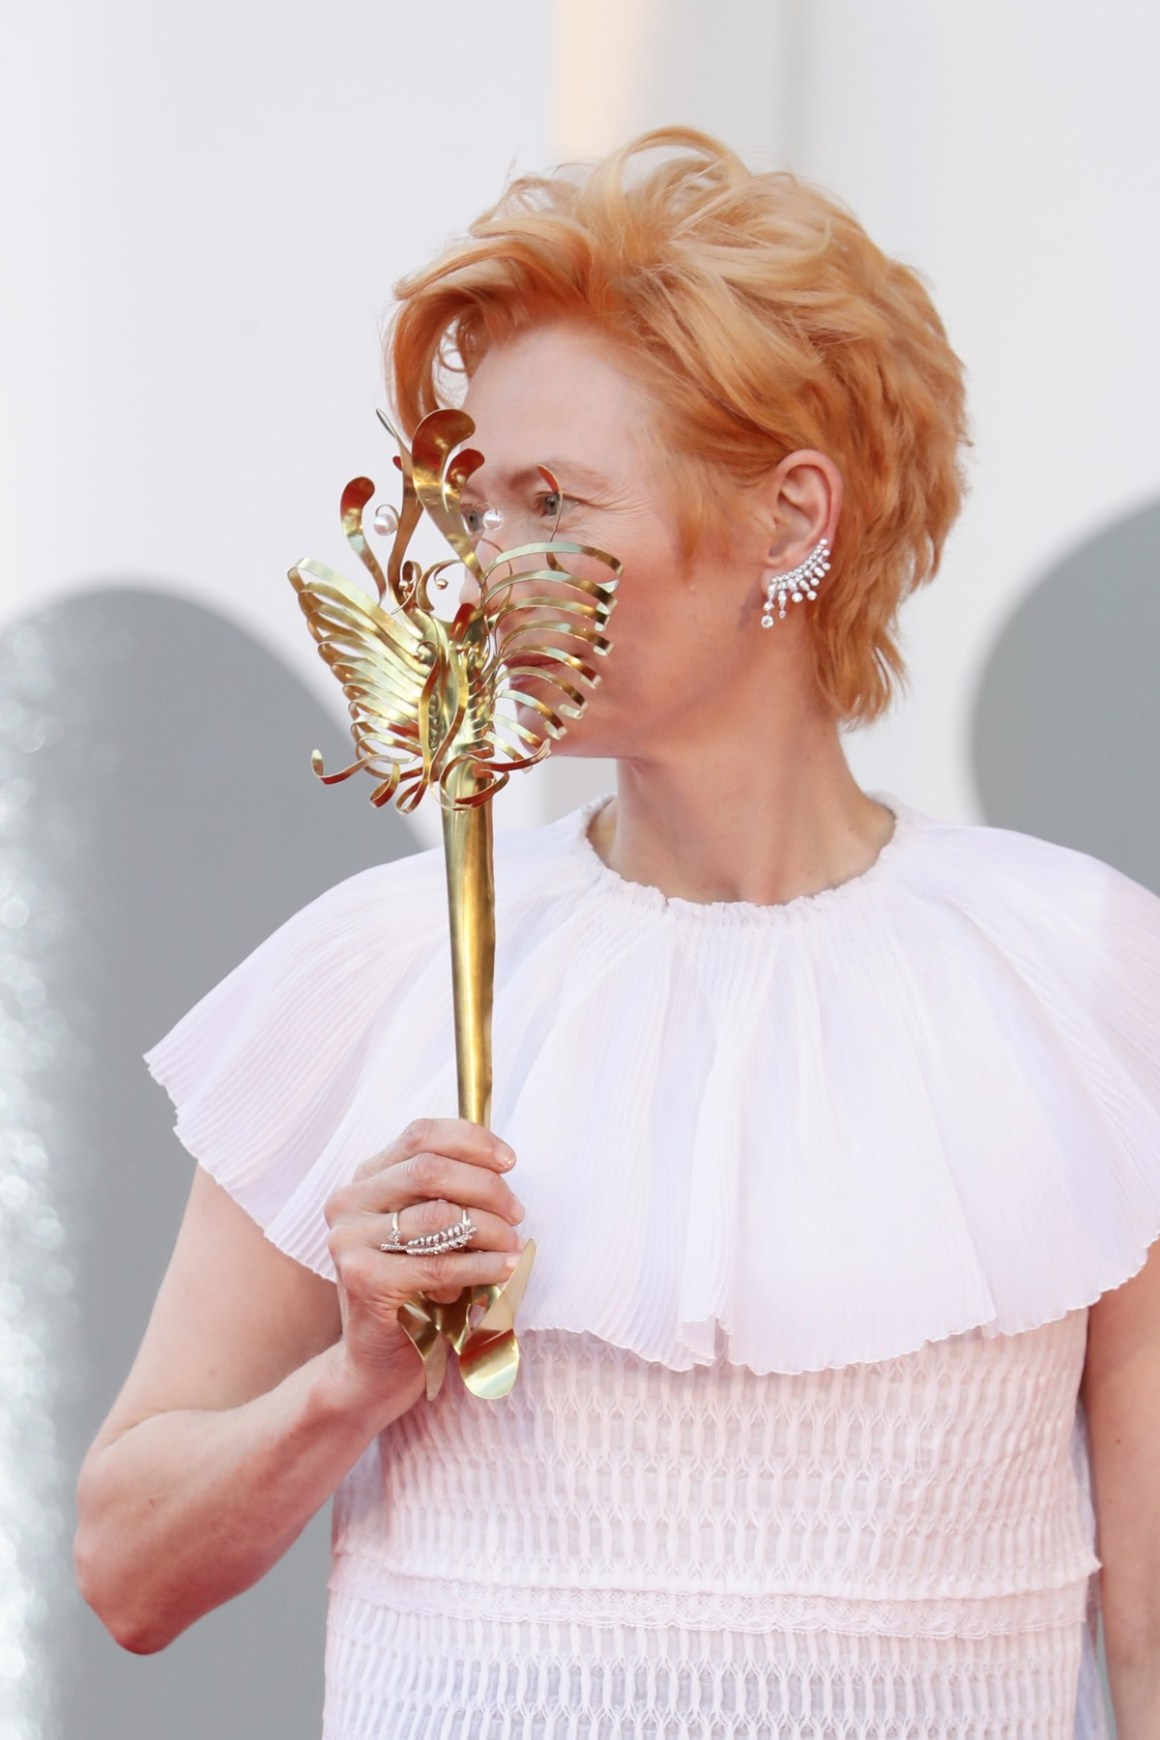 """Tilda Swinton """"Lacci"""" Red Carpet And Opening Ceremony Red Carpet Arrivals - The 77th Venice Film Festival"""